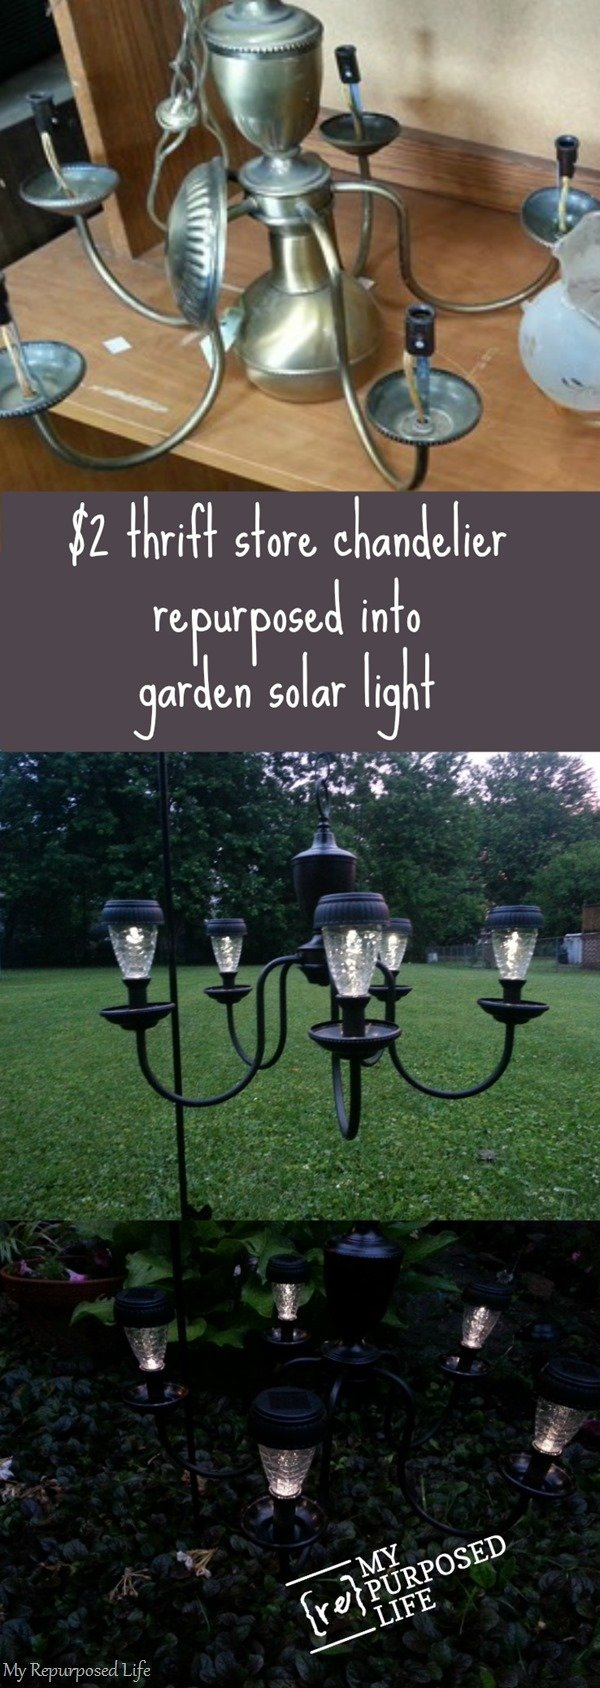 I Love this thrift store chandelier repurposed into a patio or garden solar light by #myrepurposedlife #repurposed #chandelier #outdoors #light #solar via @repurposedlife